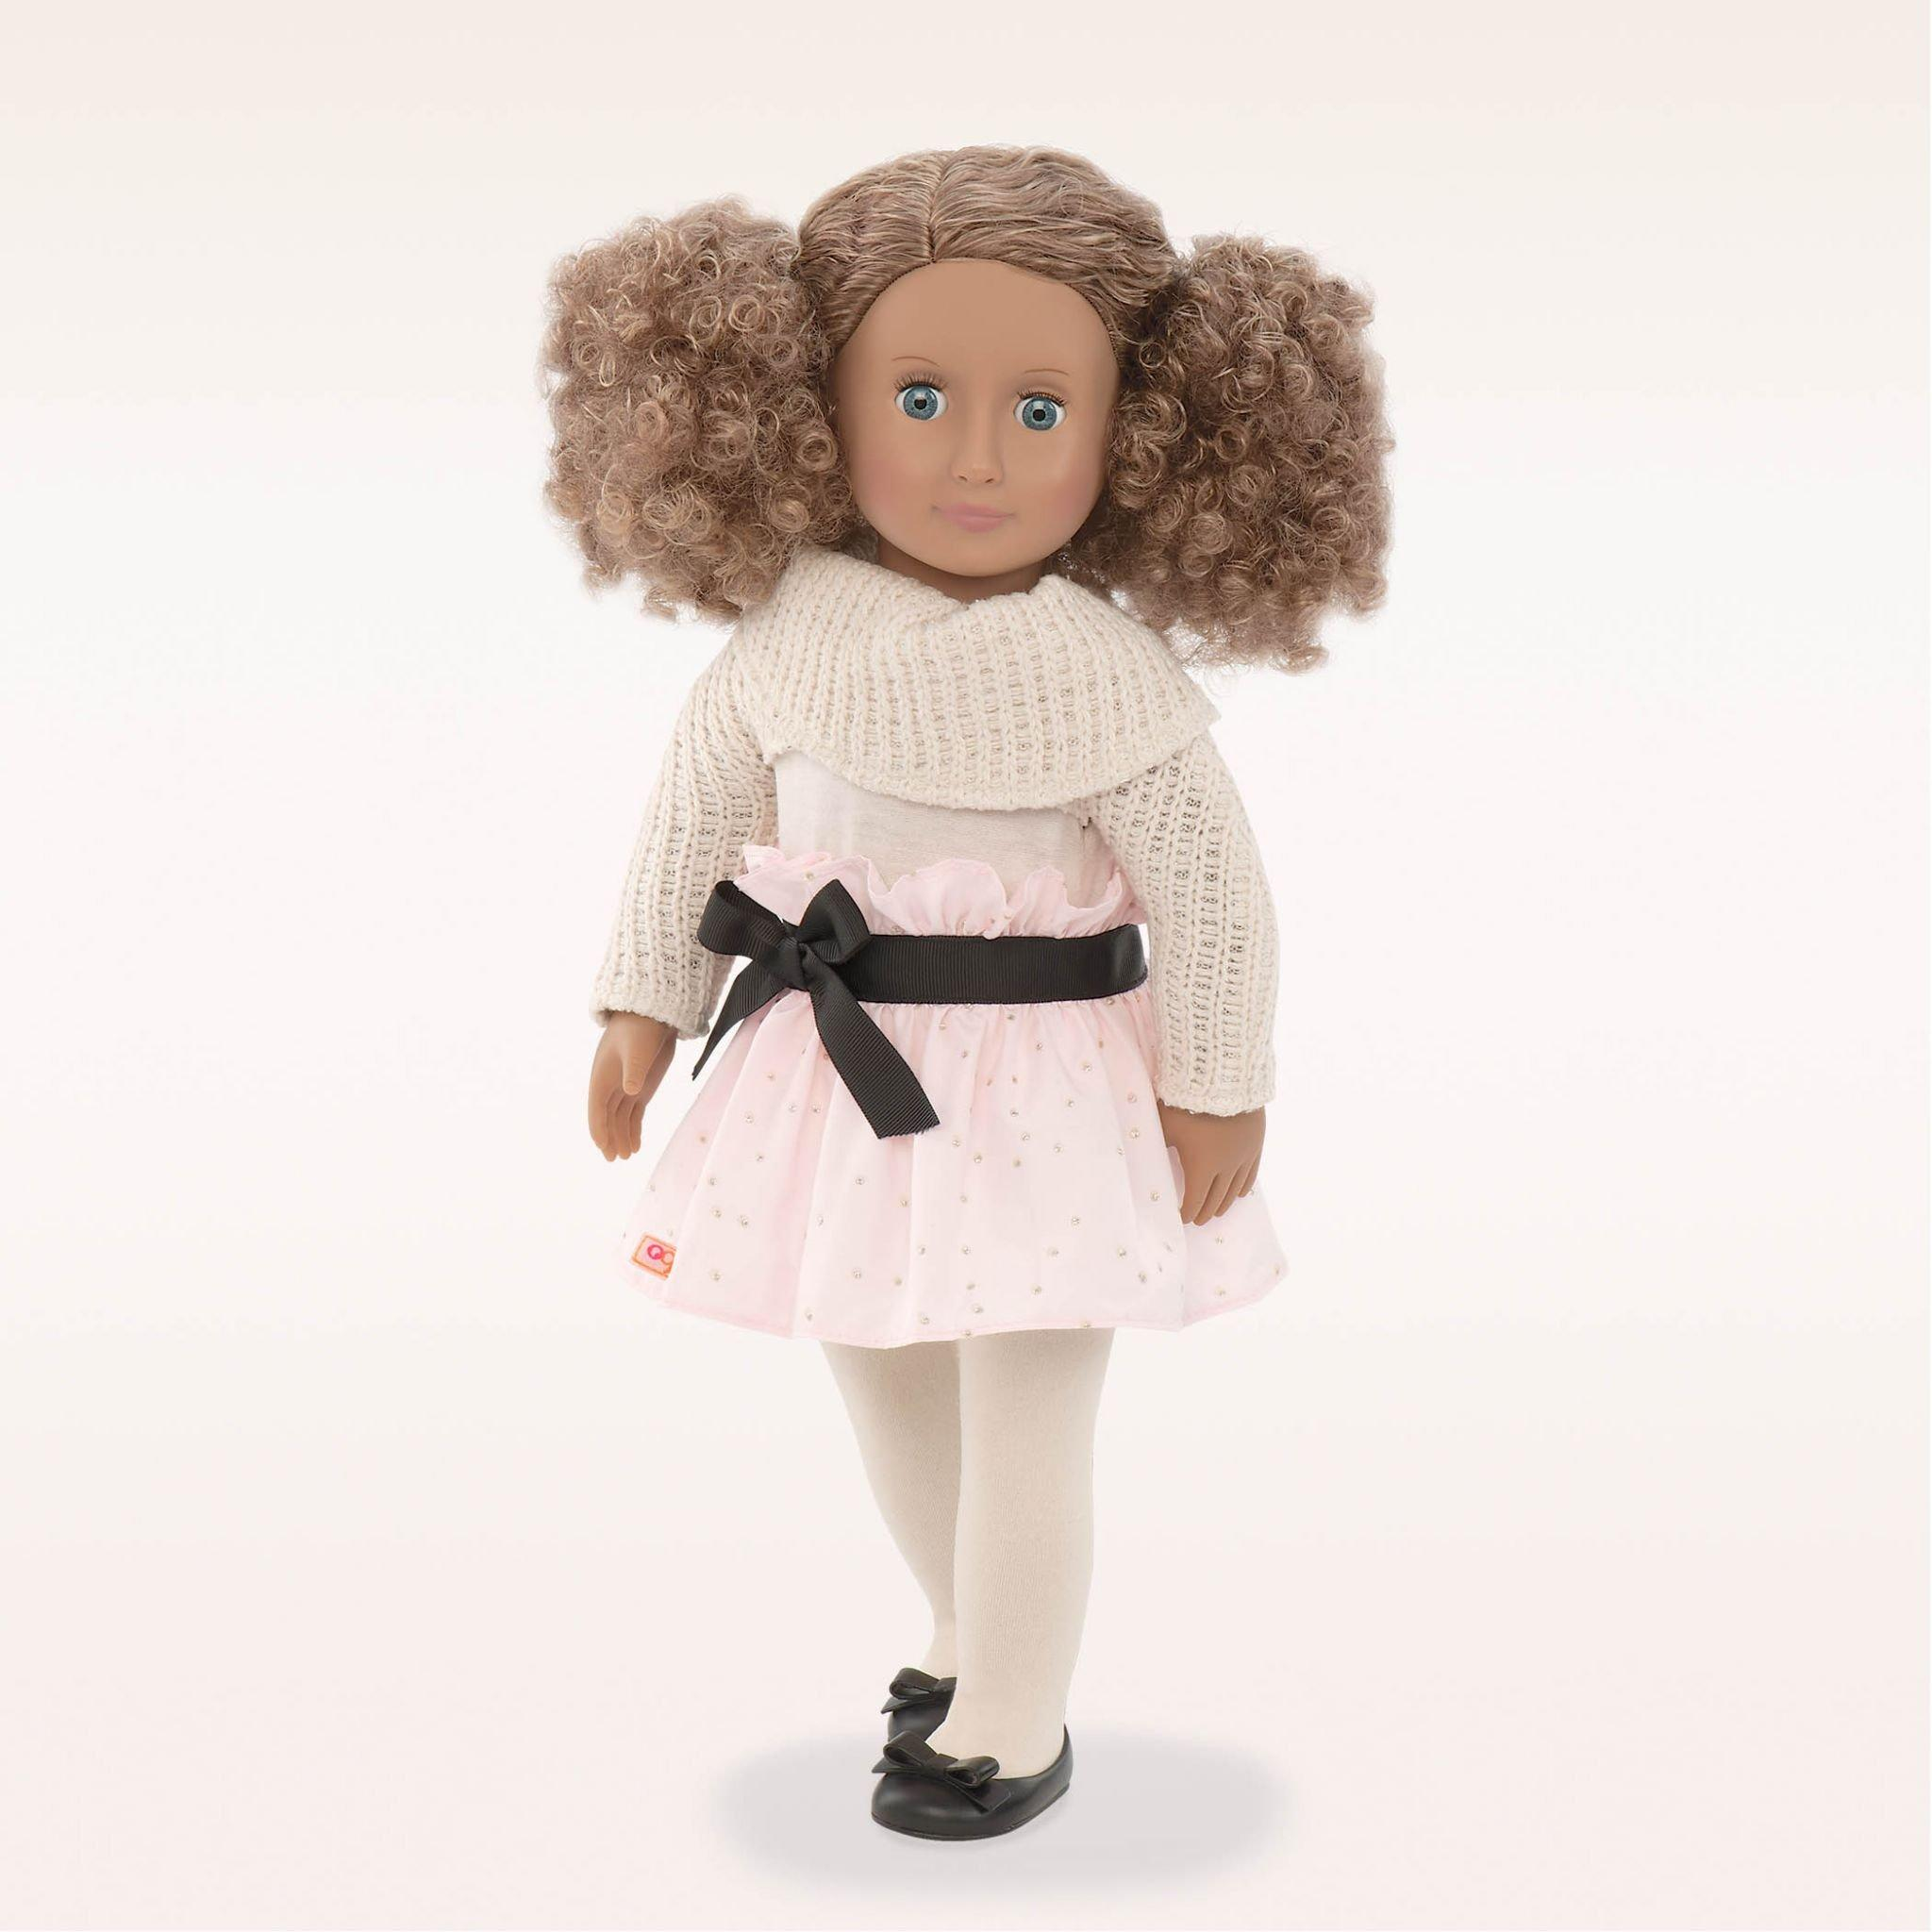 Kaylee Our Generation mixed race doll